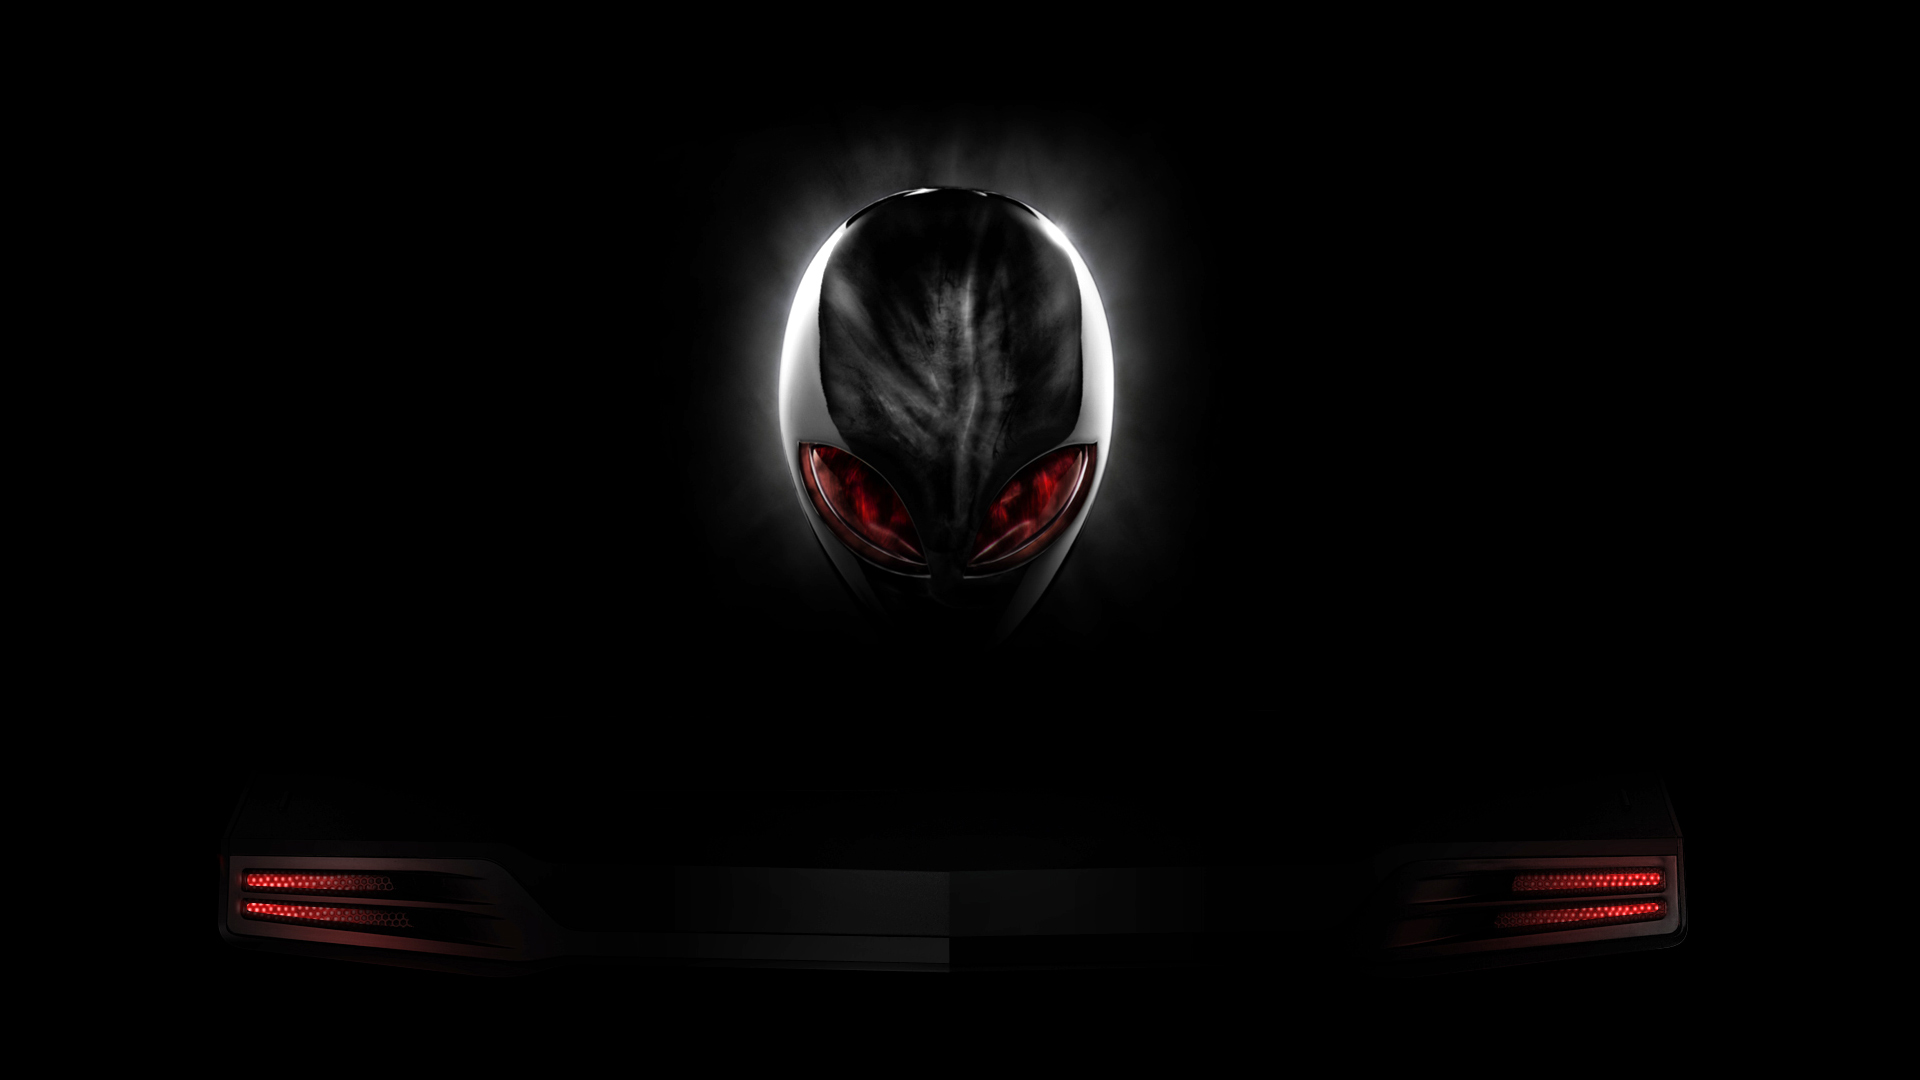 Red And Black Wallpaper 1080p Alienware red eyes logo black 1920x1080